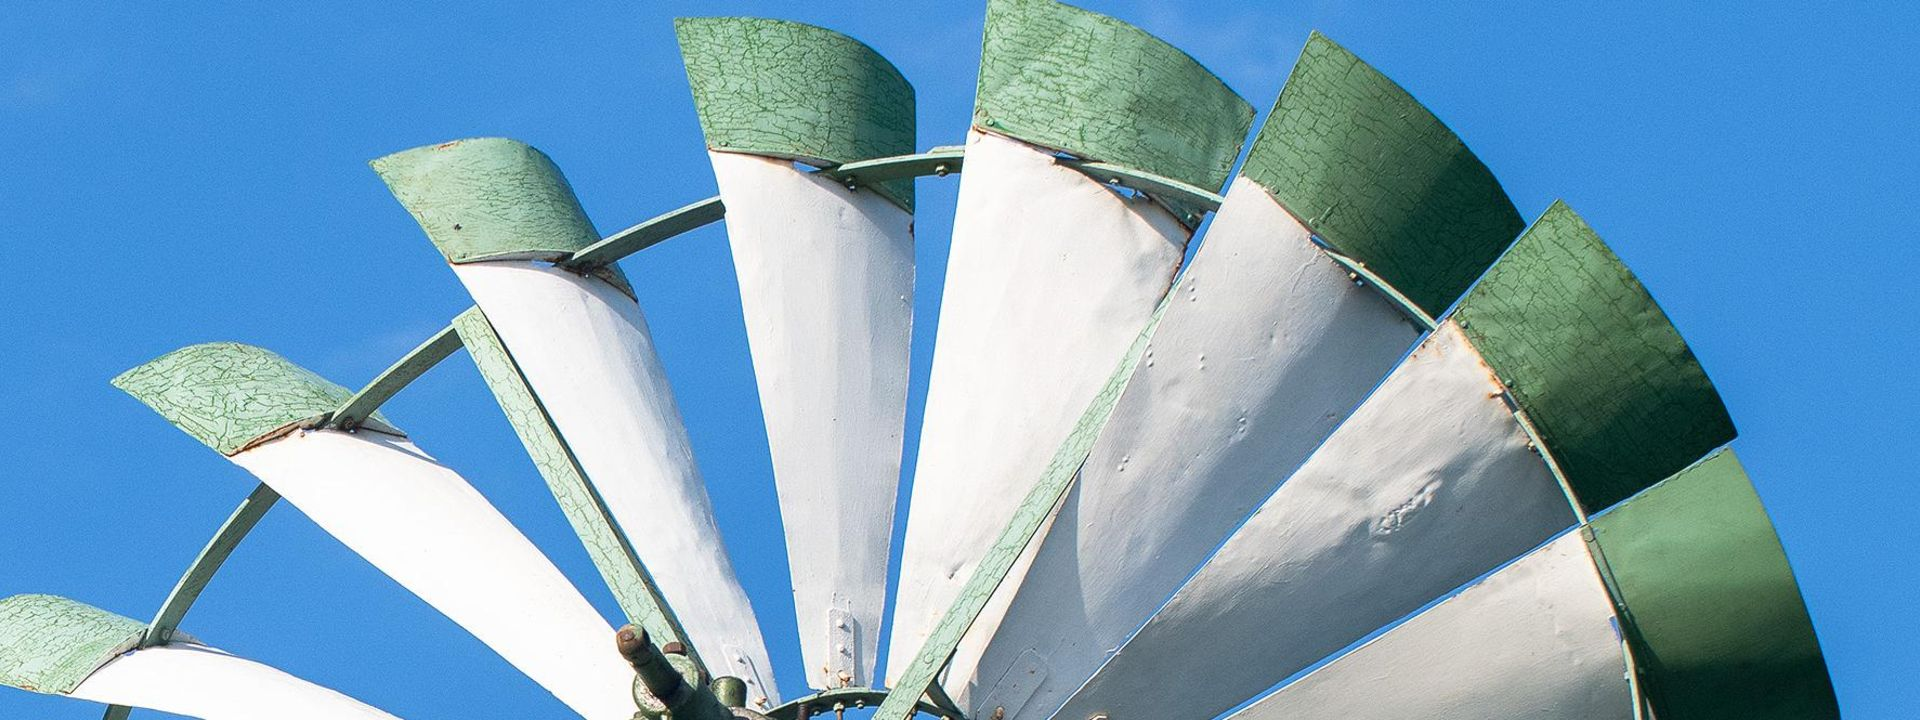 The white and green blades of a windmill against a blue sky.